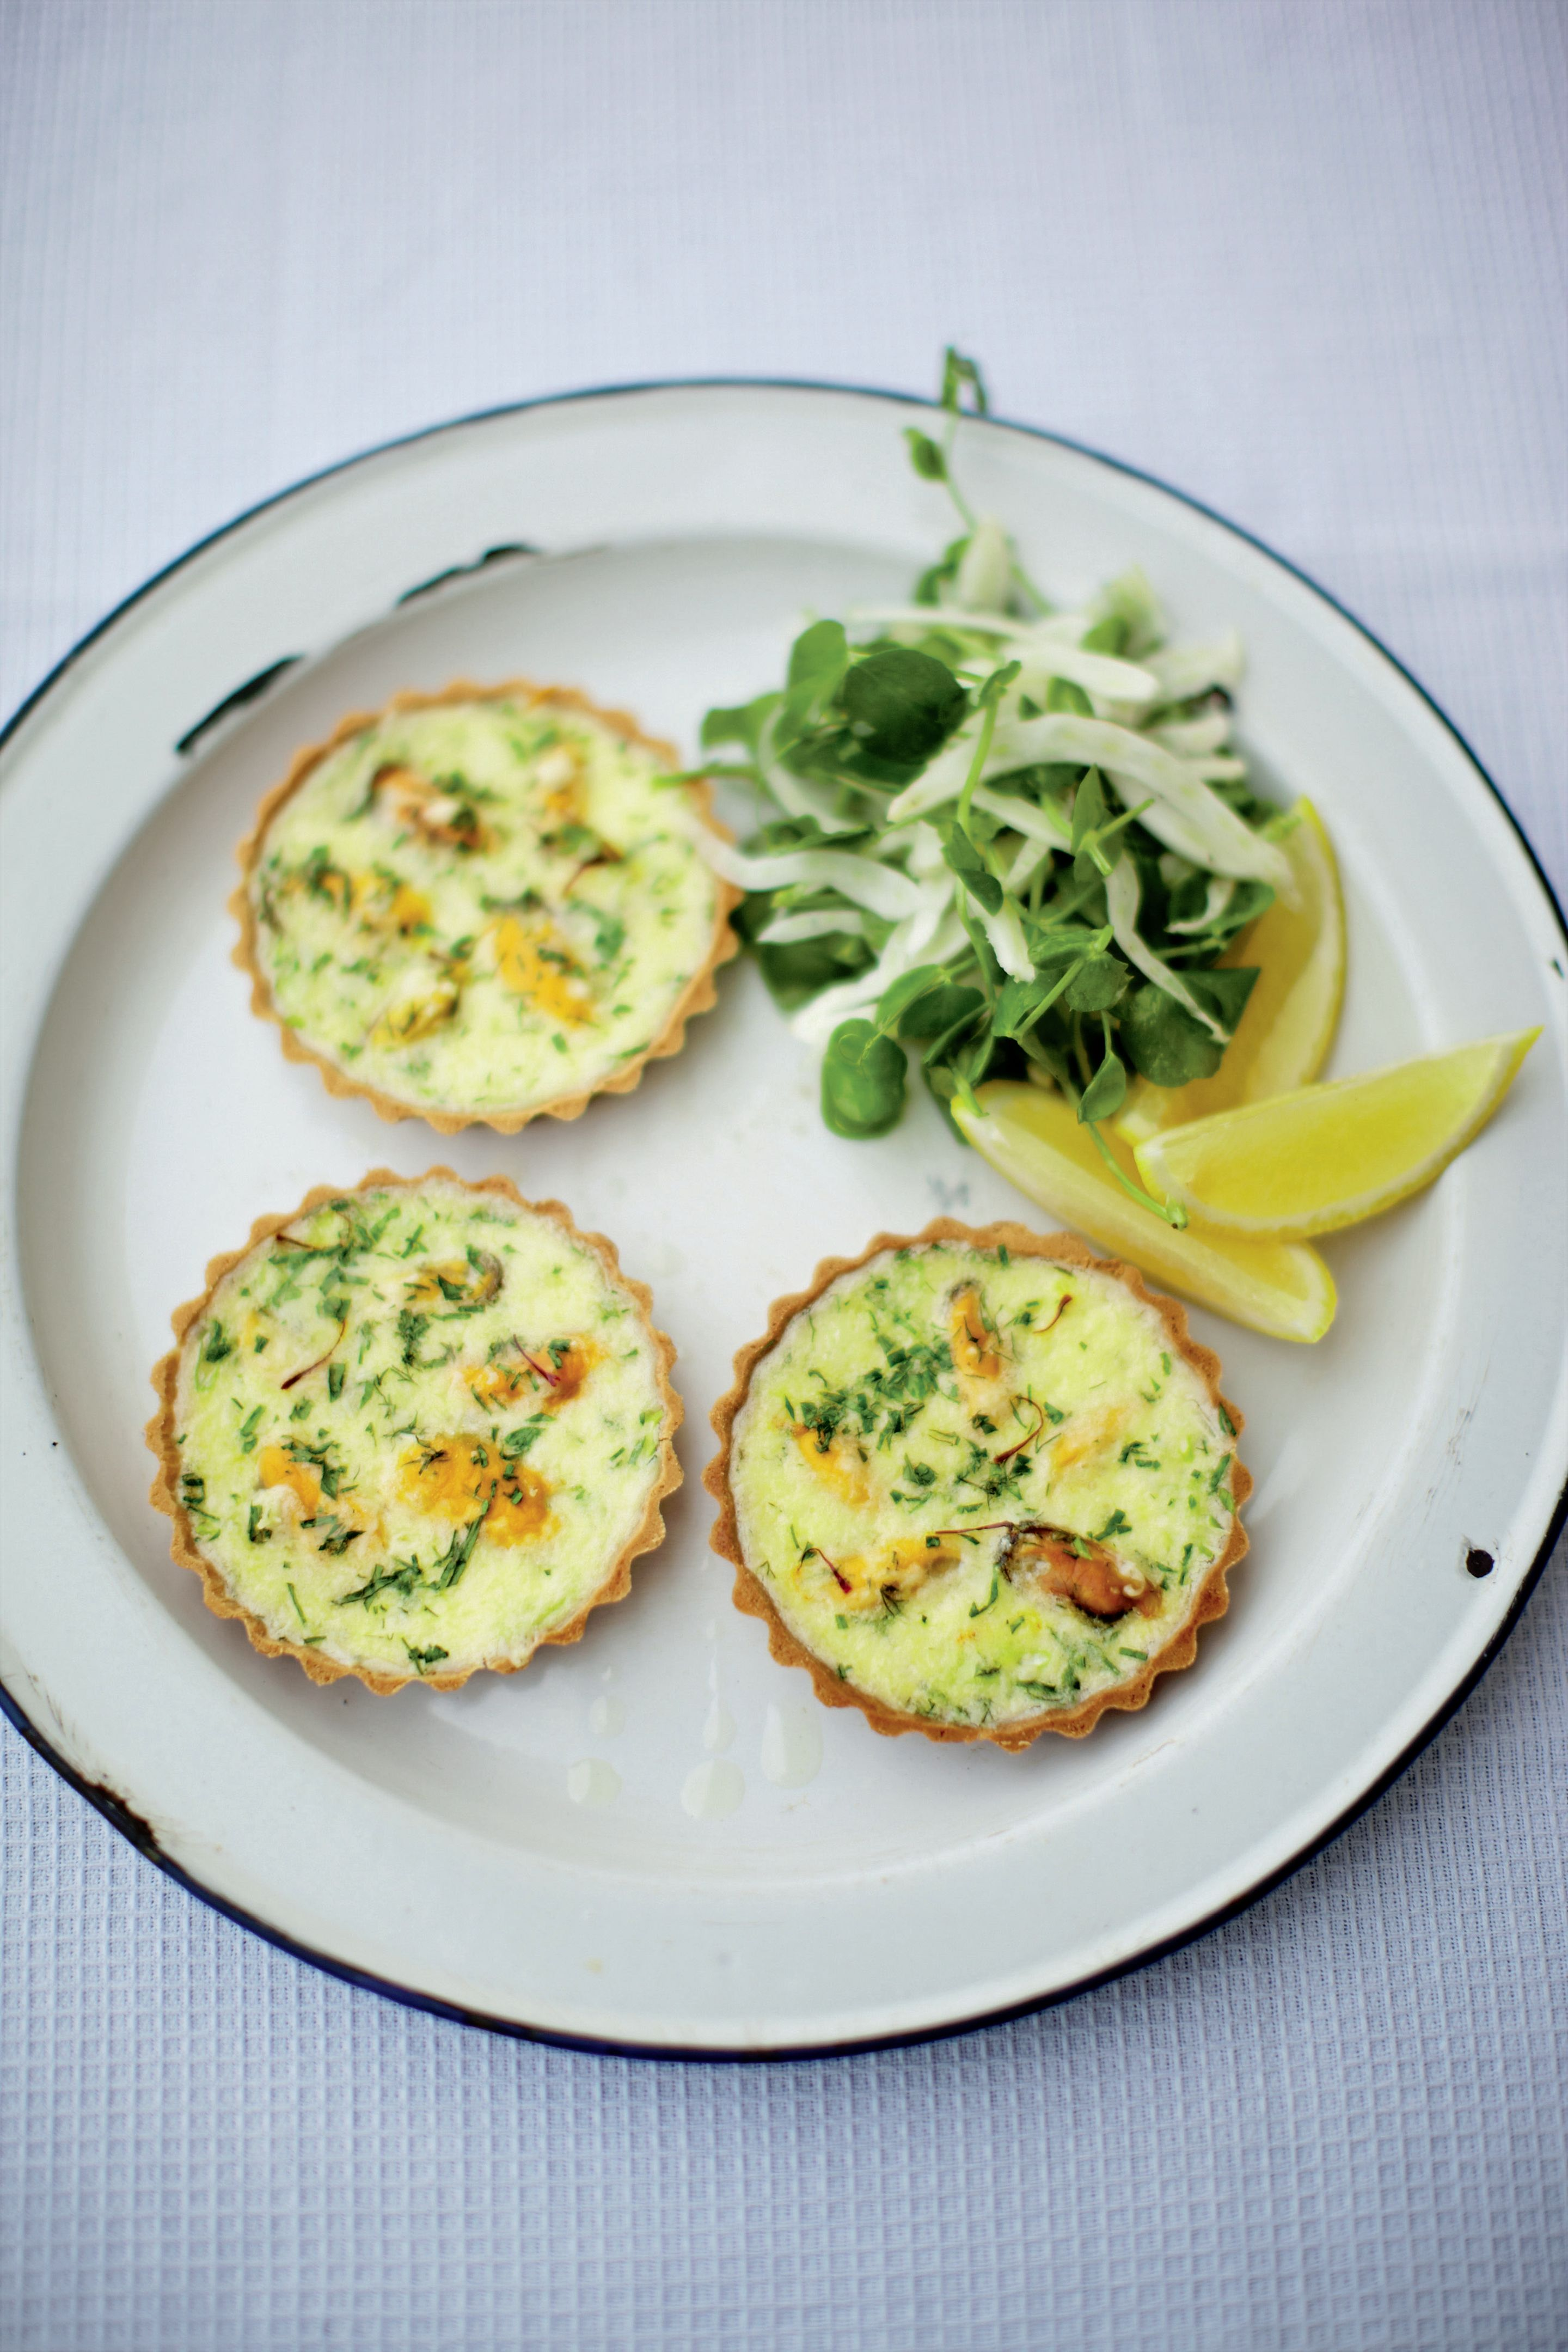 Mussel and saffron quiche with fennel and rocket salad